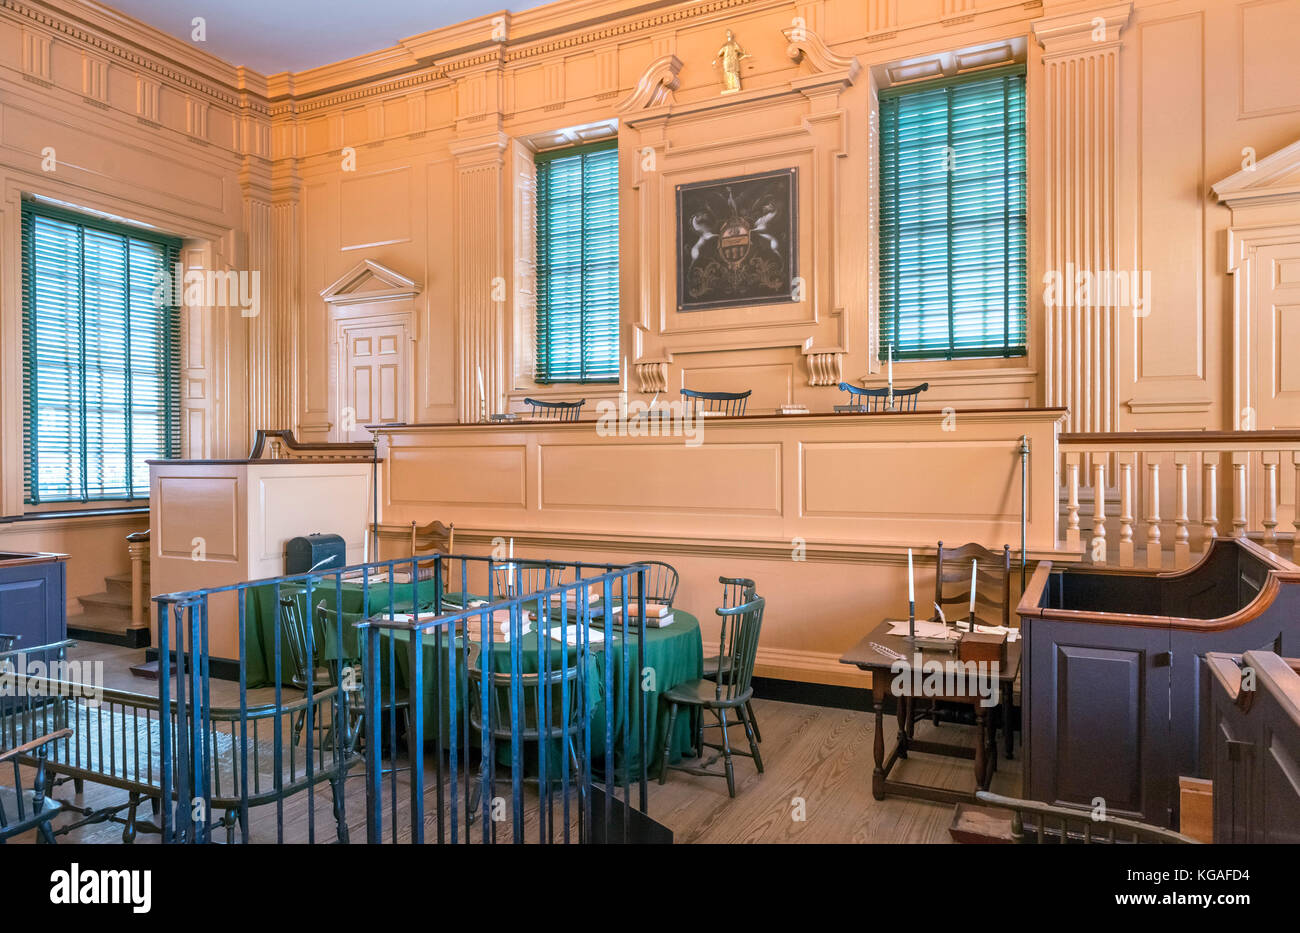 The Supreme Court courtroom in Independence Hall, Independence National Historic Park, Philadelphia, Pennsylvania, - Stock Image